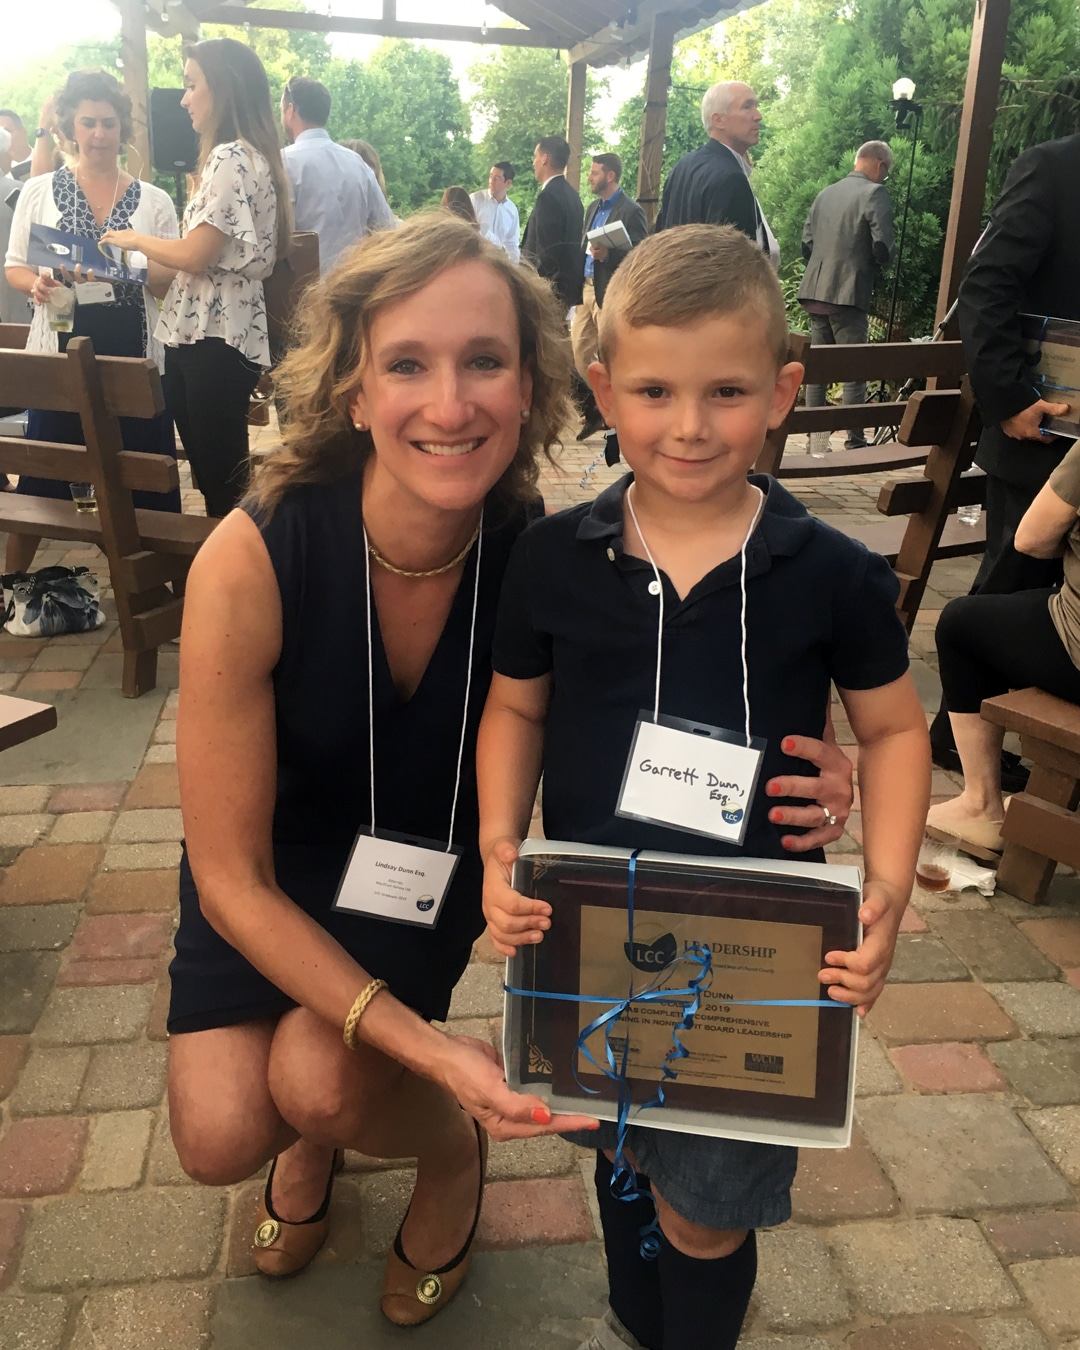 Lindsay Dunn and her son at the 2019 Leadership Chester County Graduation on June 6.